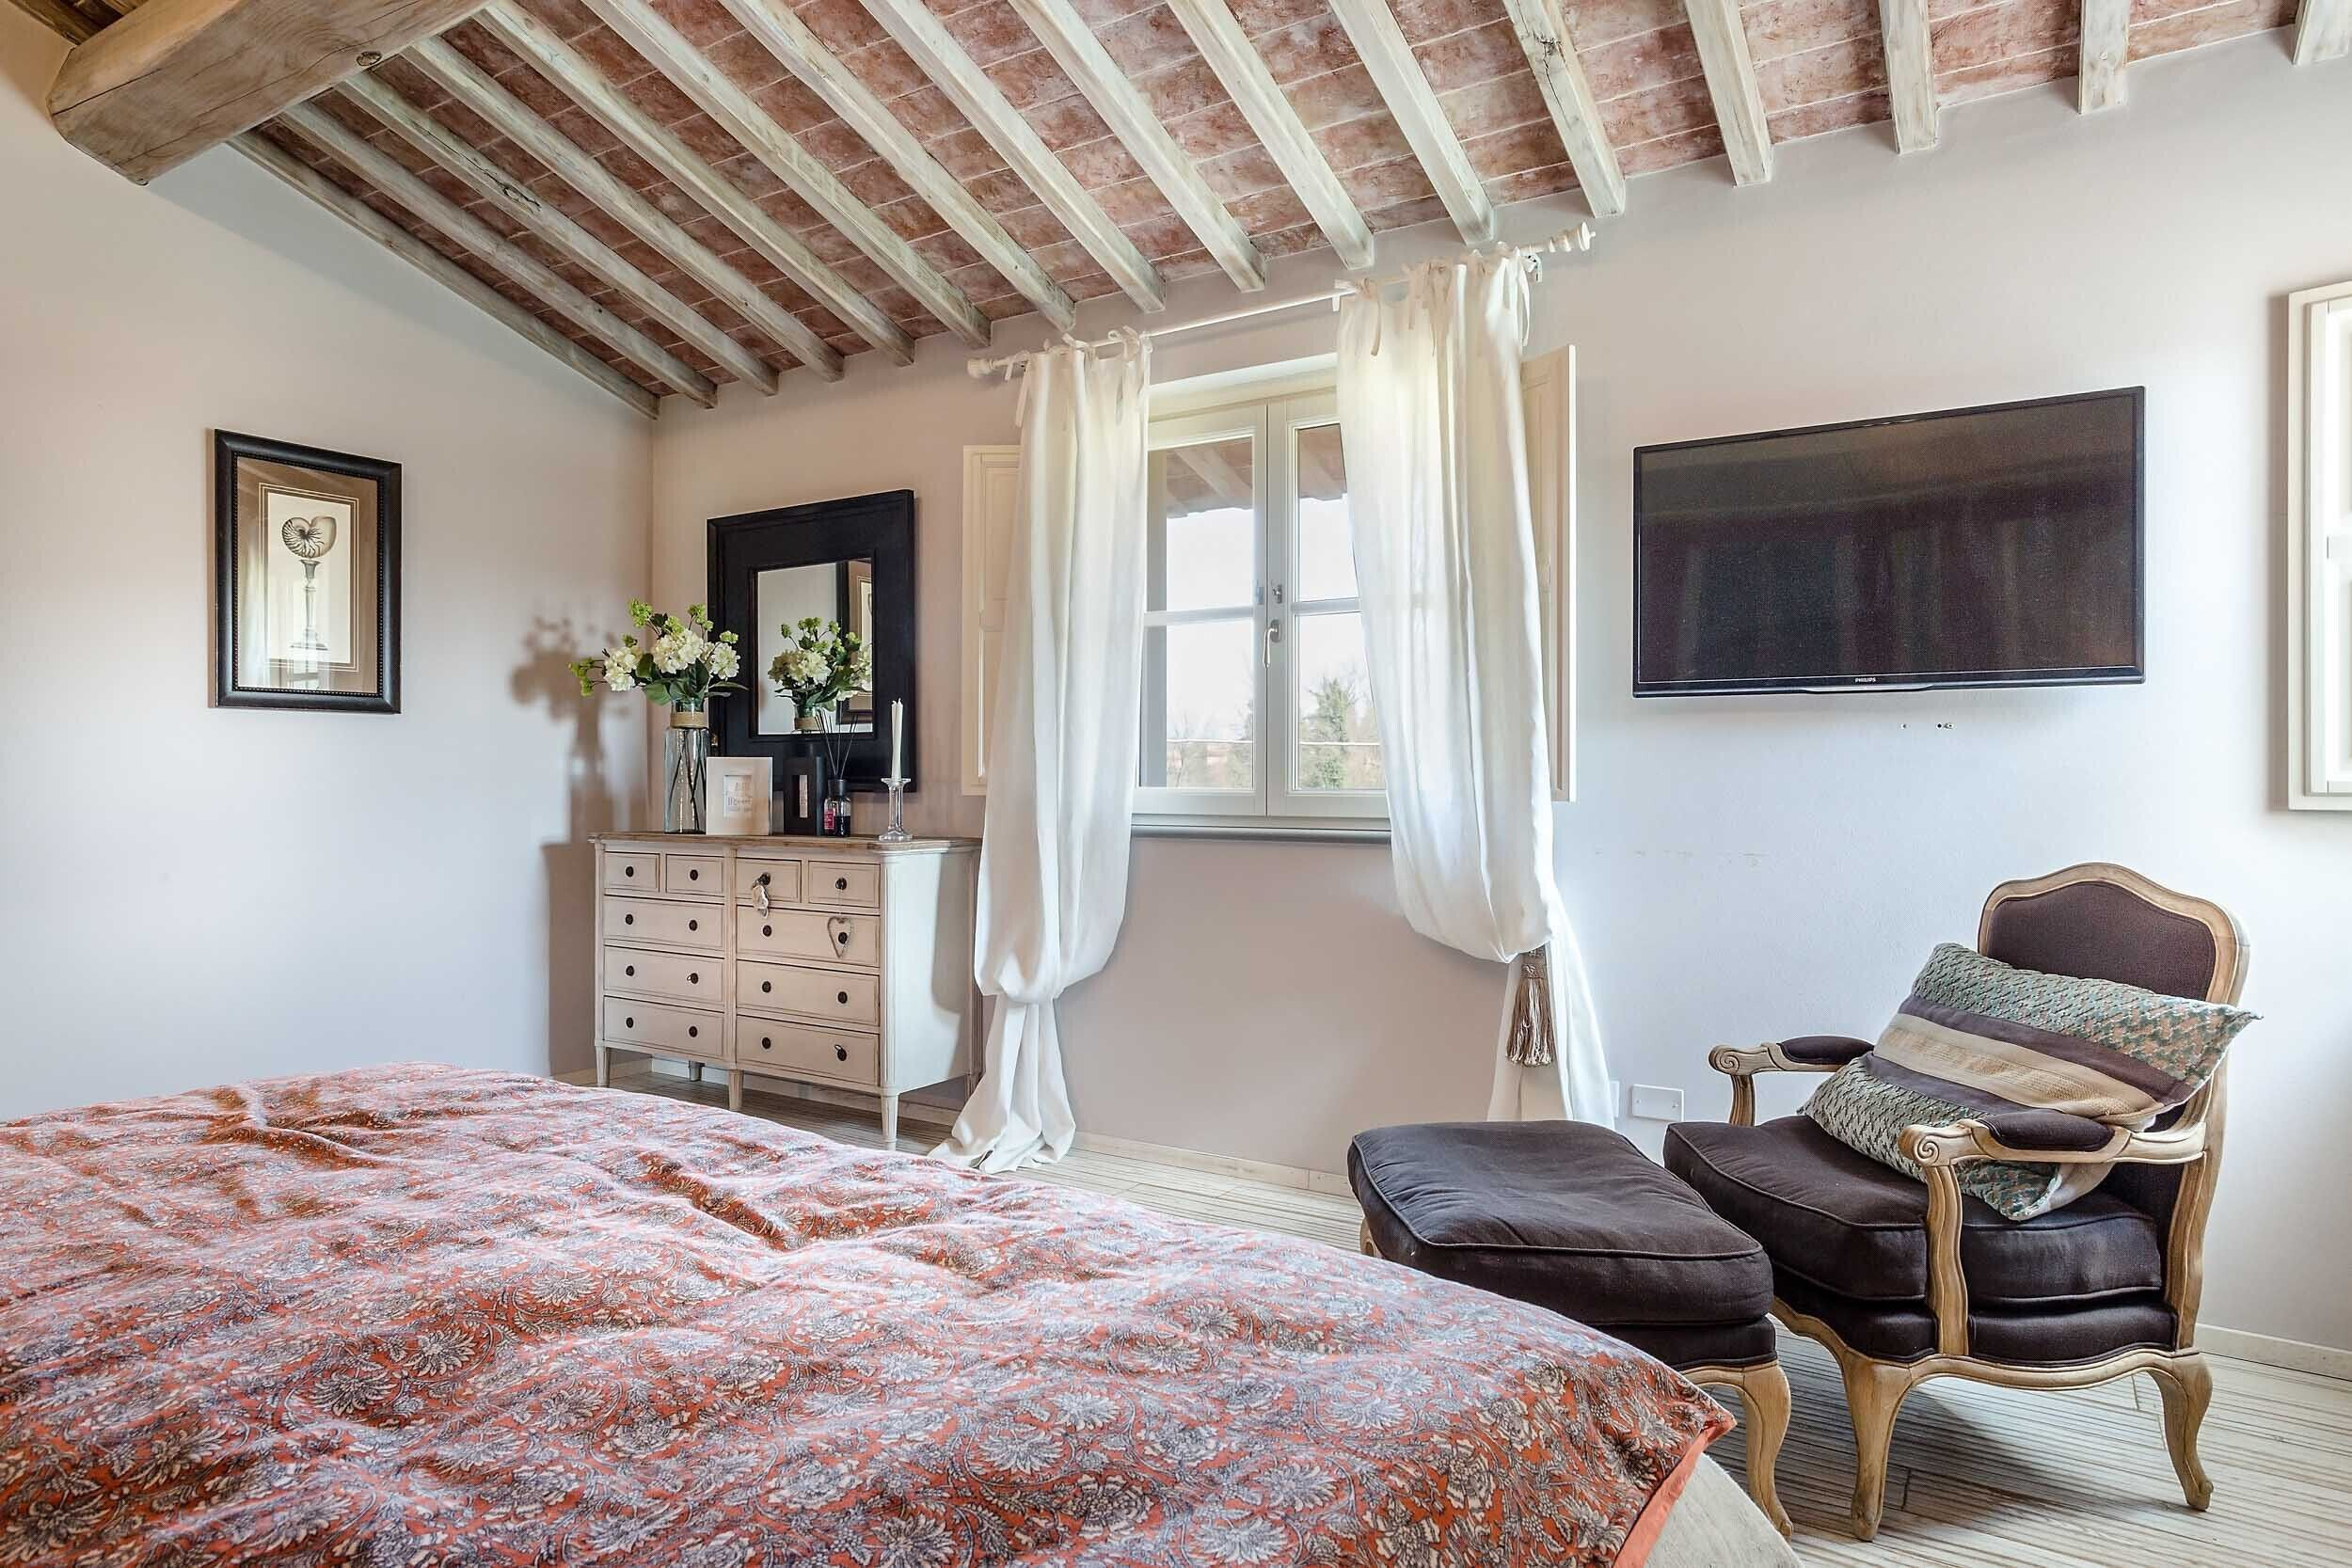 Schlafzimmer Bei Otto Villa Otto Luxury Tuscan Farmhouse With Private Pool Close To Lucca Pisa Pistoia, Castelfranco Di Sotto: Hotelbewertungen 2021 | Expedia.at